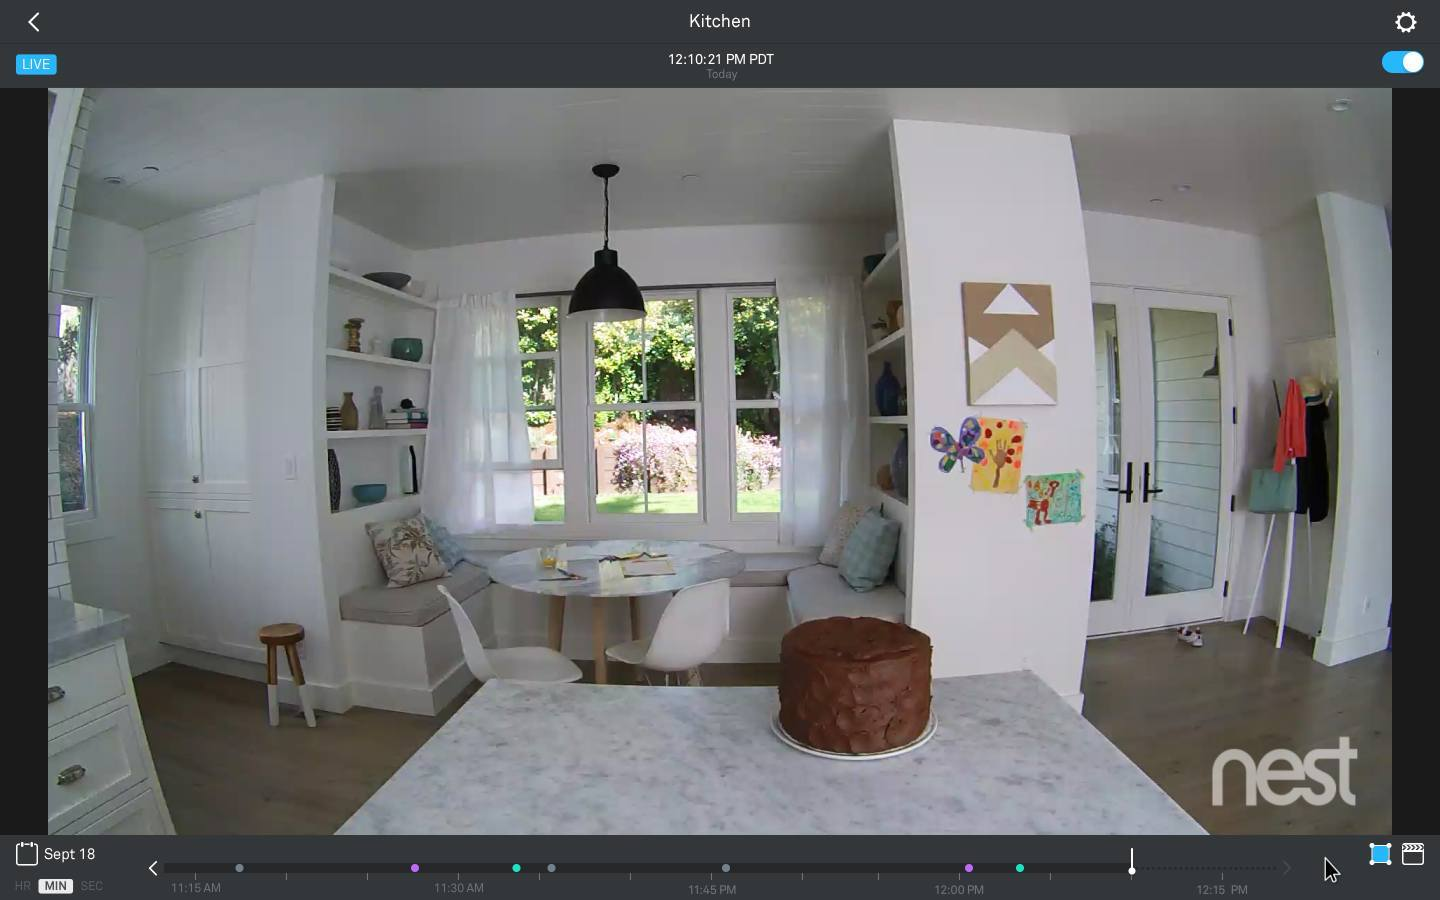 Application to your phone and Nest cameras